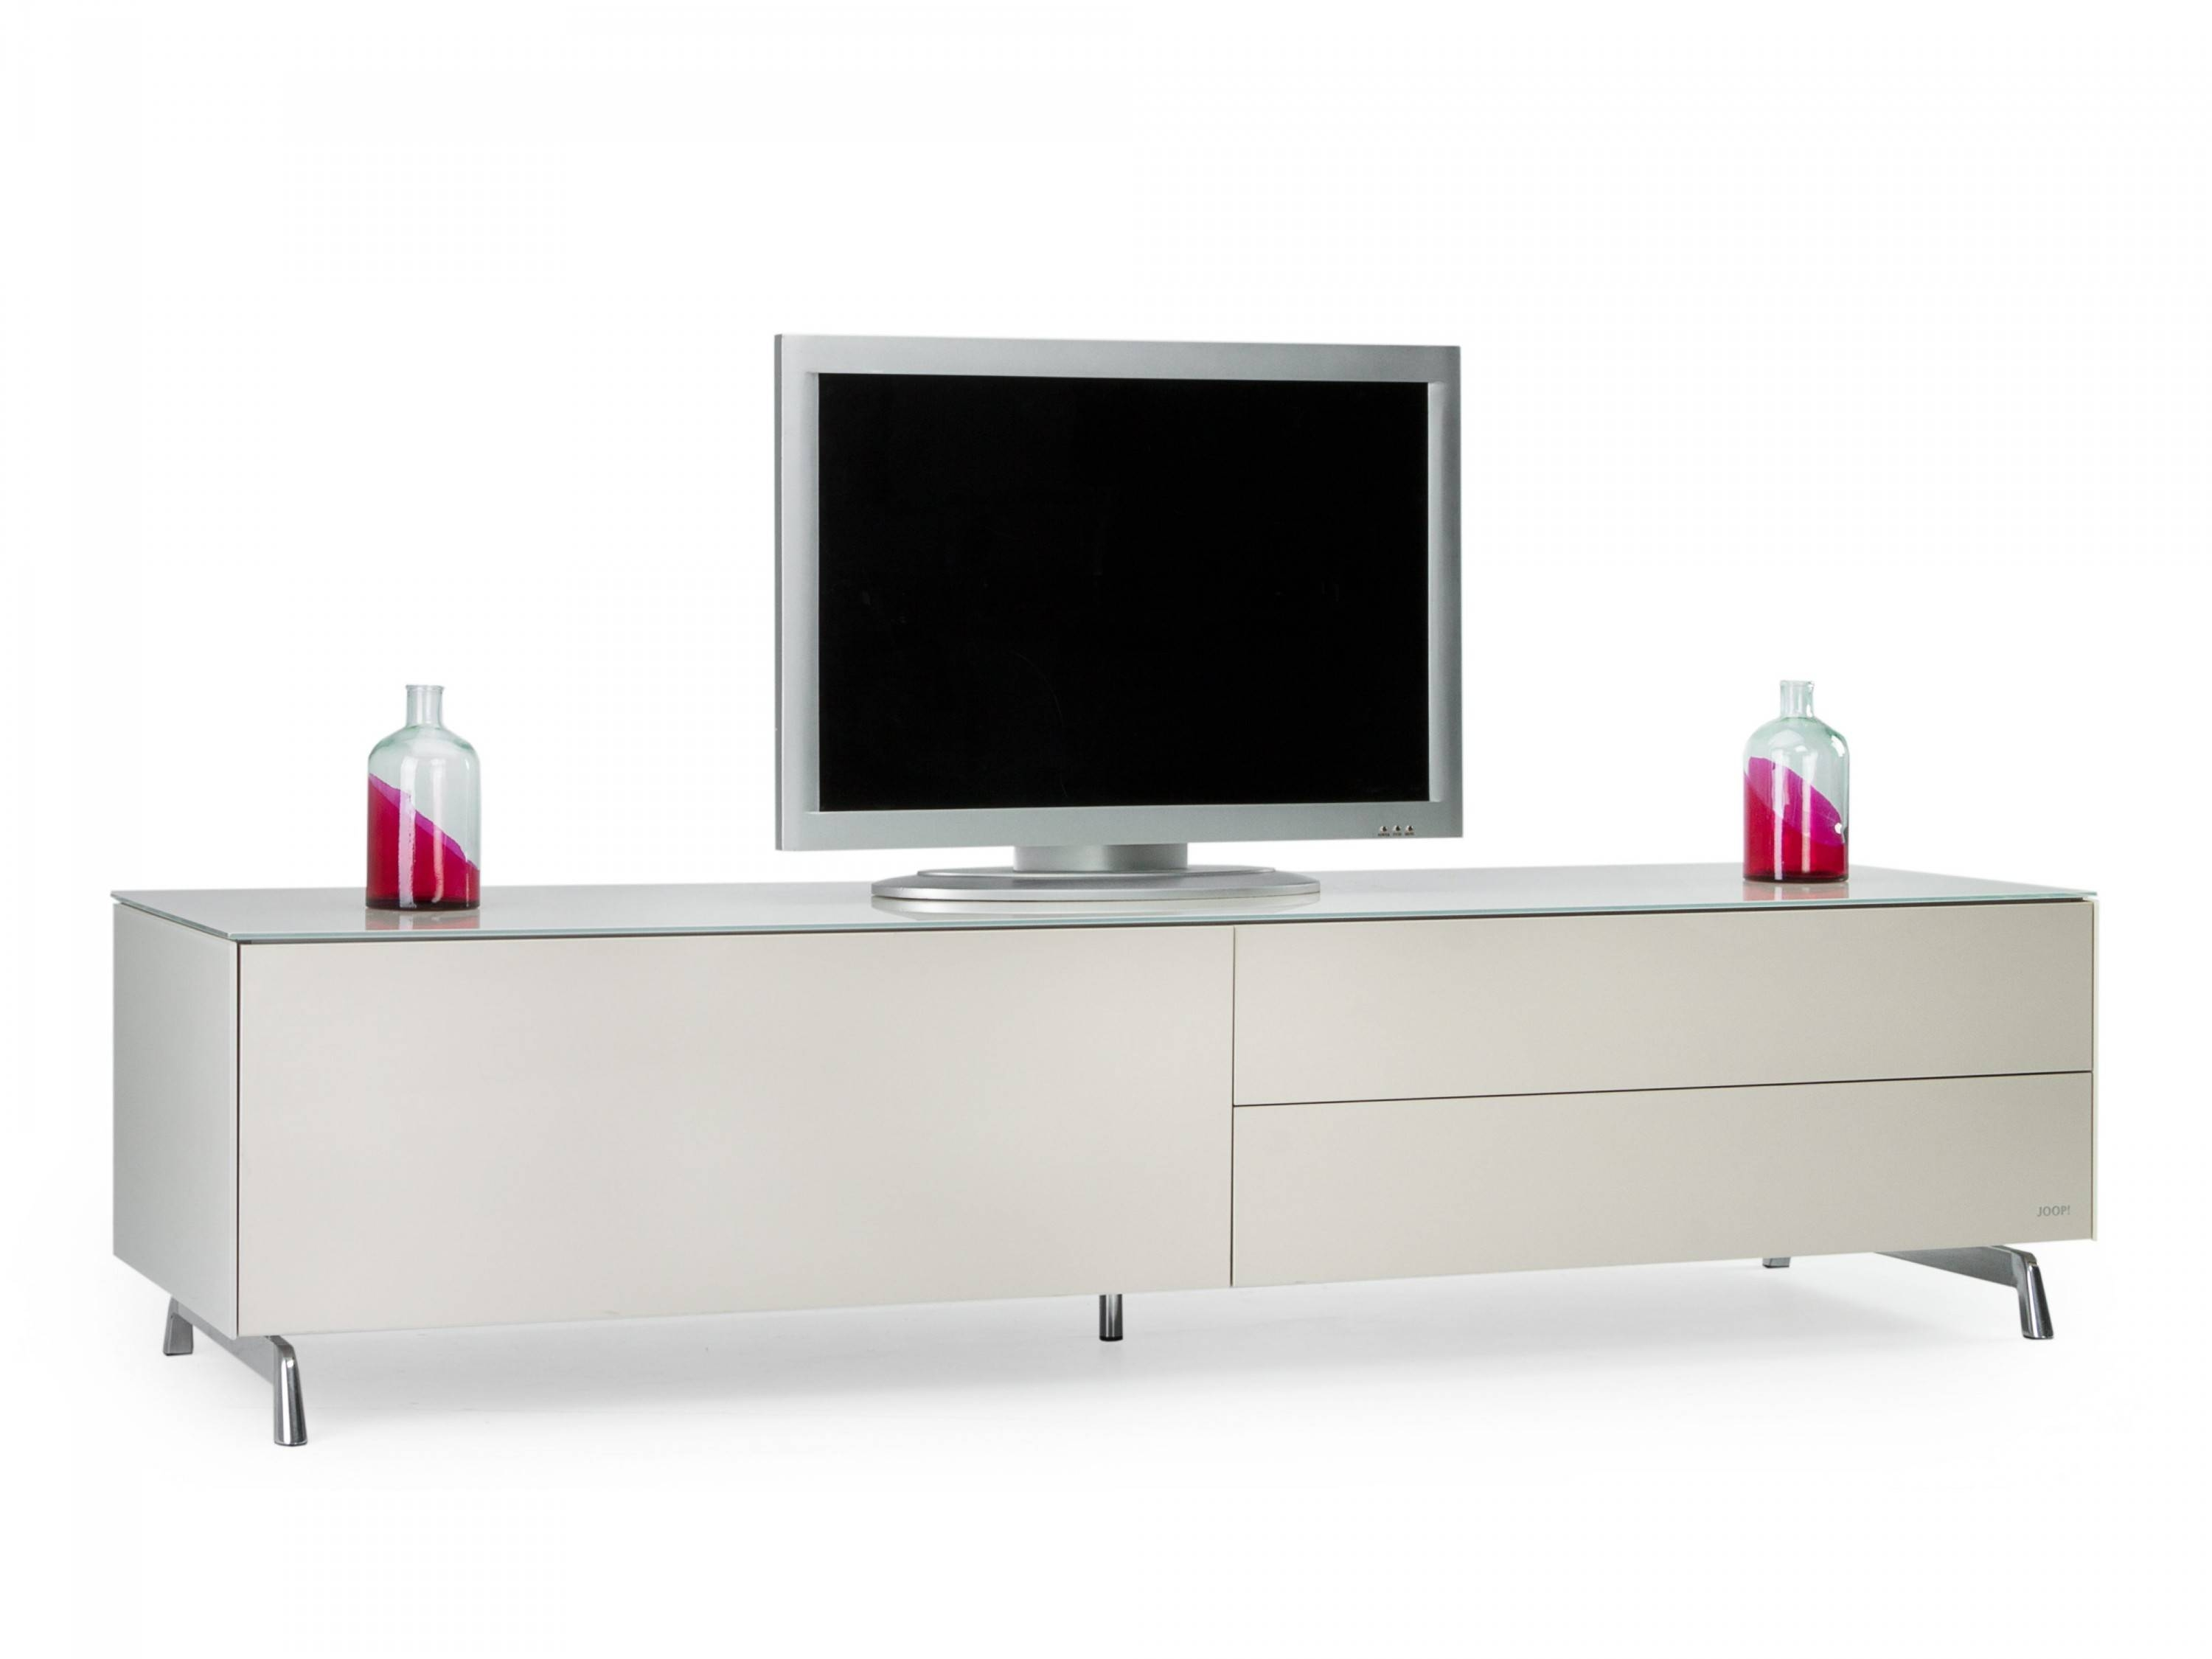 Lowboard Joop! Loft Von Joop! Und Schr?nke & Regale G?nstig Online With Regard To Current Joop Sideboards (#9 of 15)